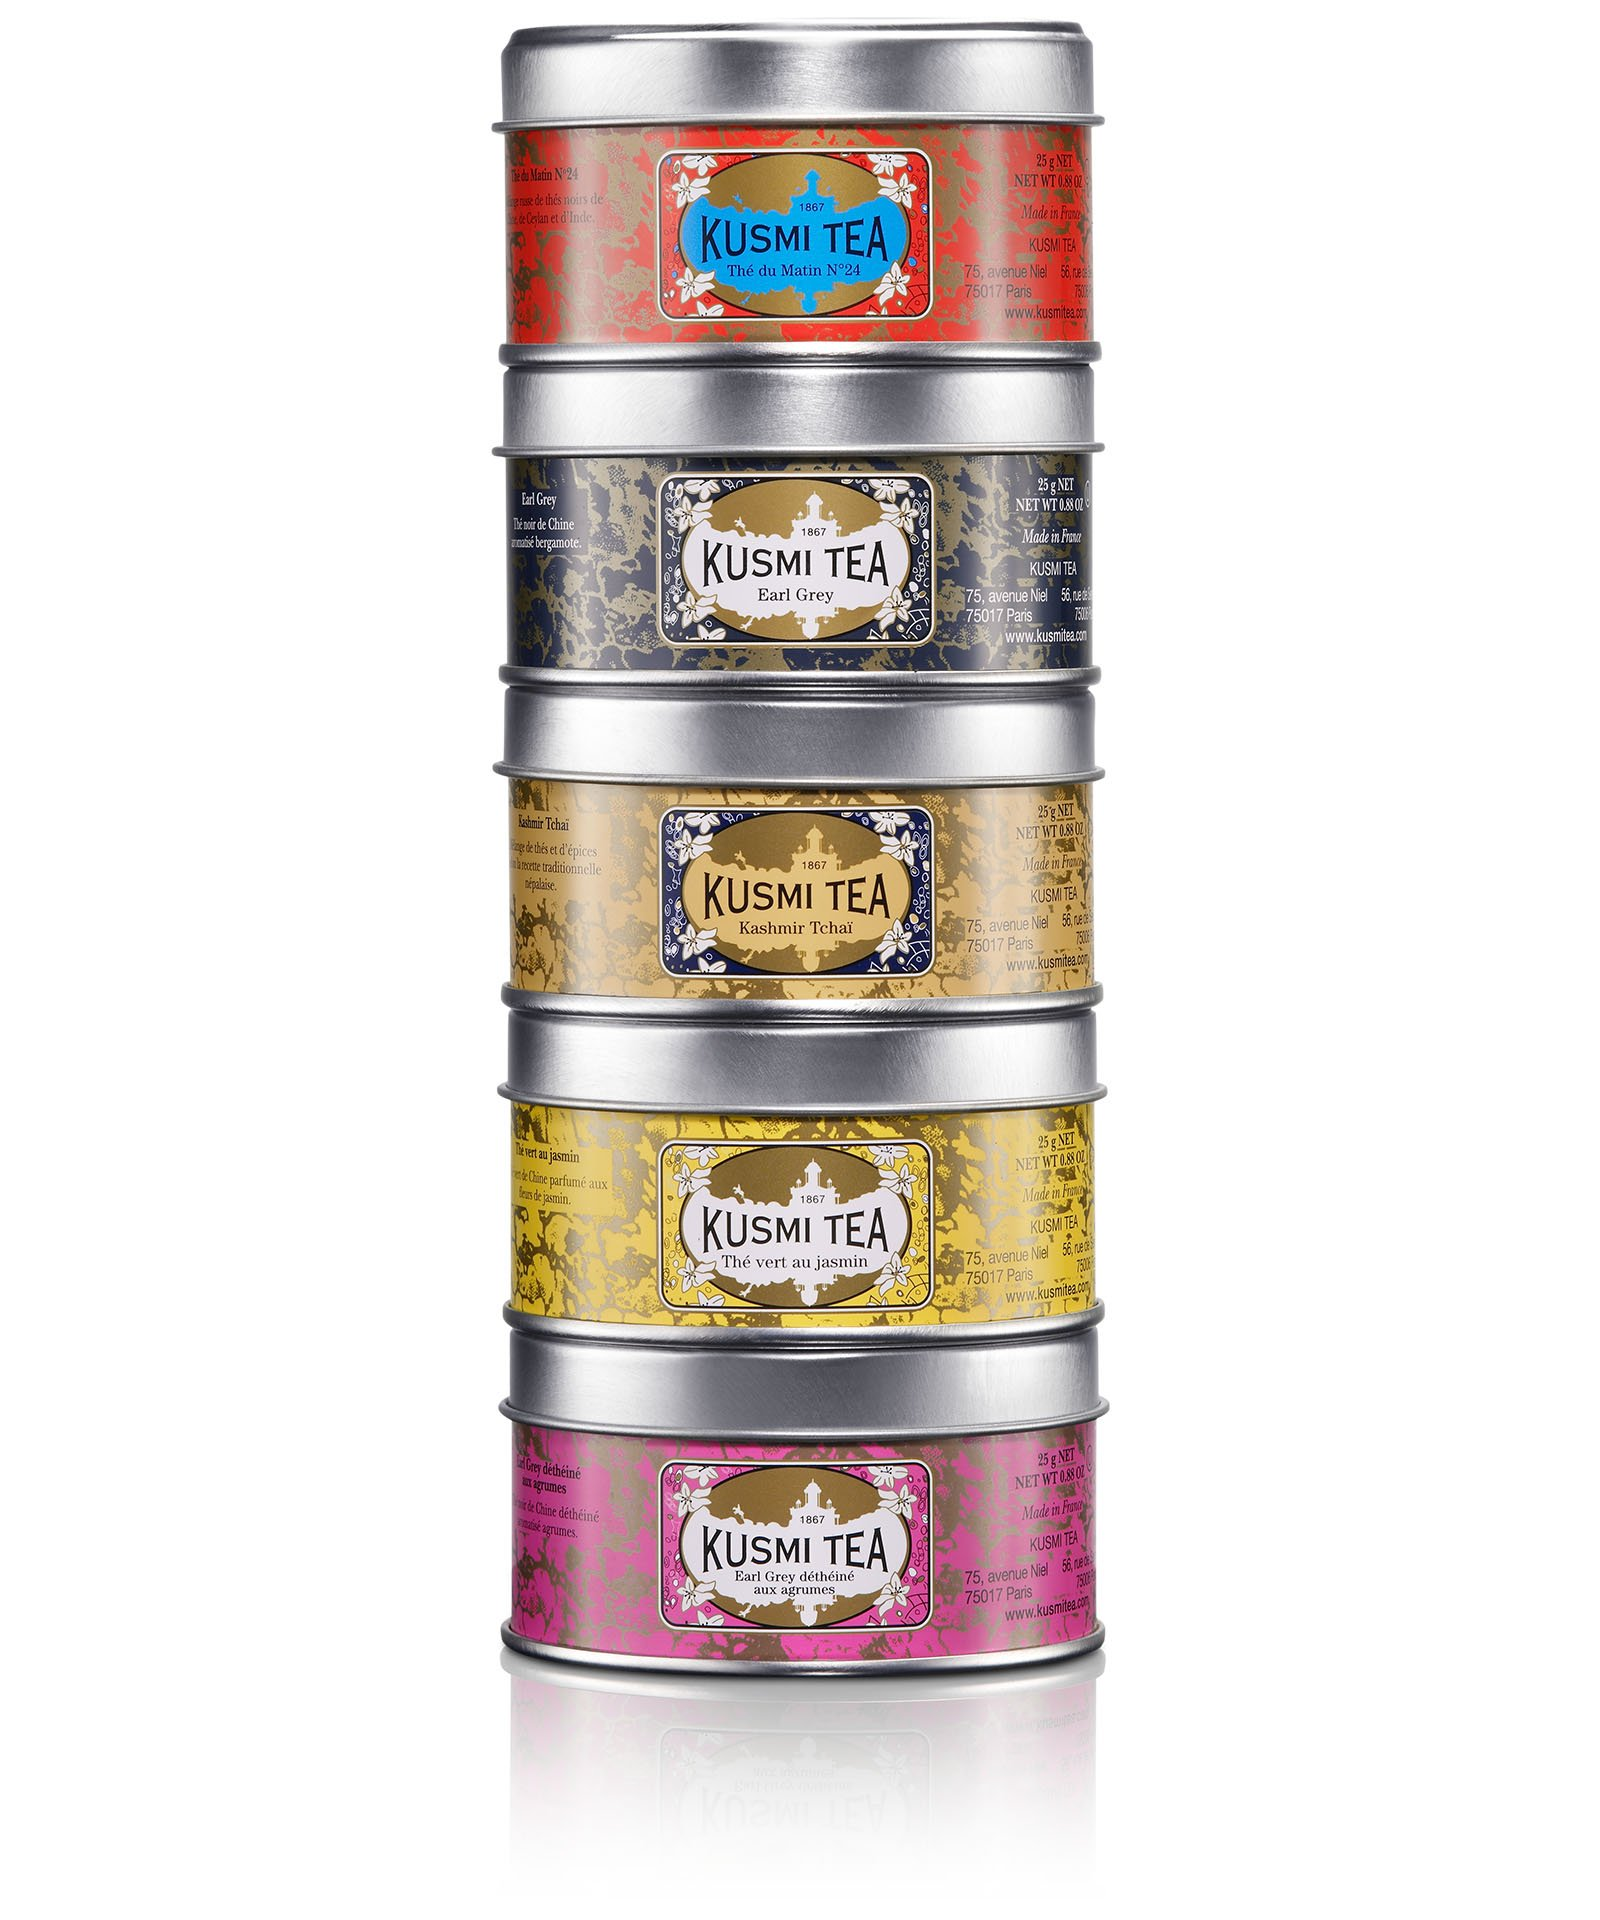 ONE MOMENT-ASSORTMENT OF 5 TINS